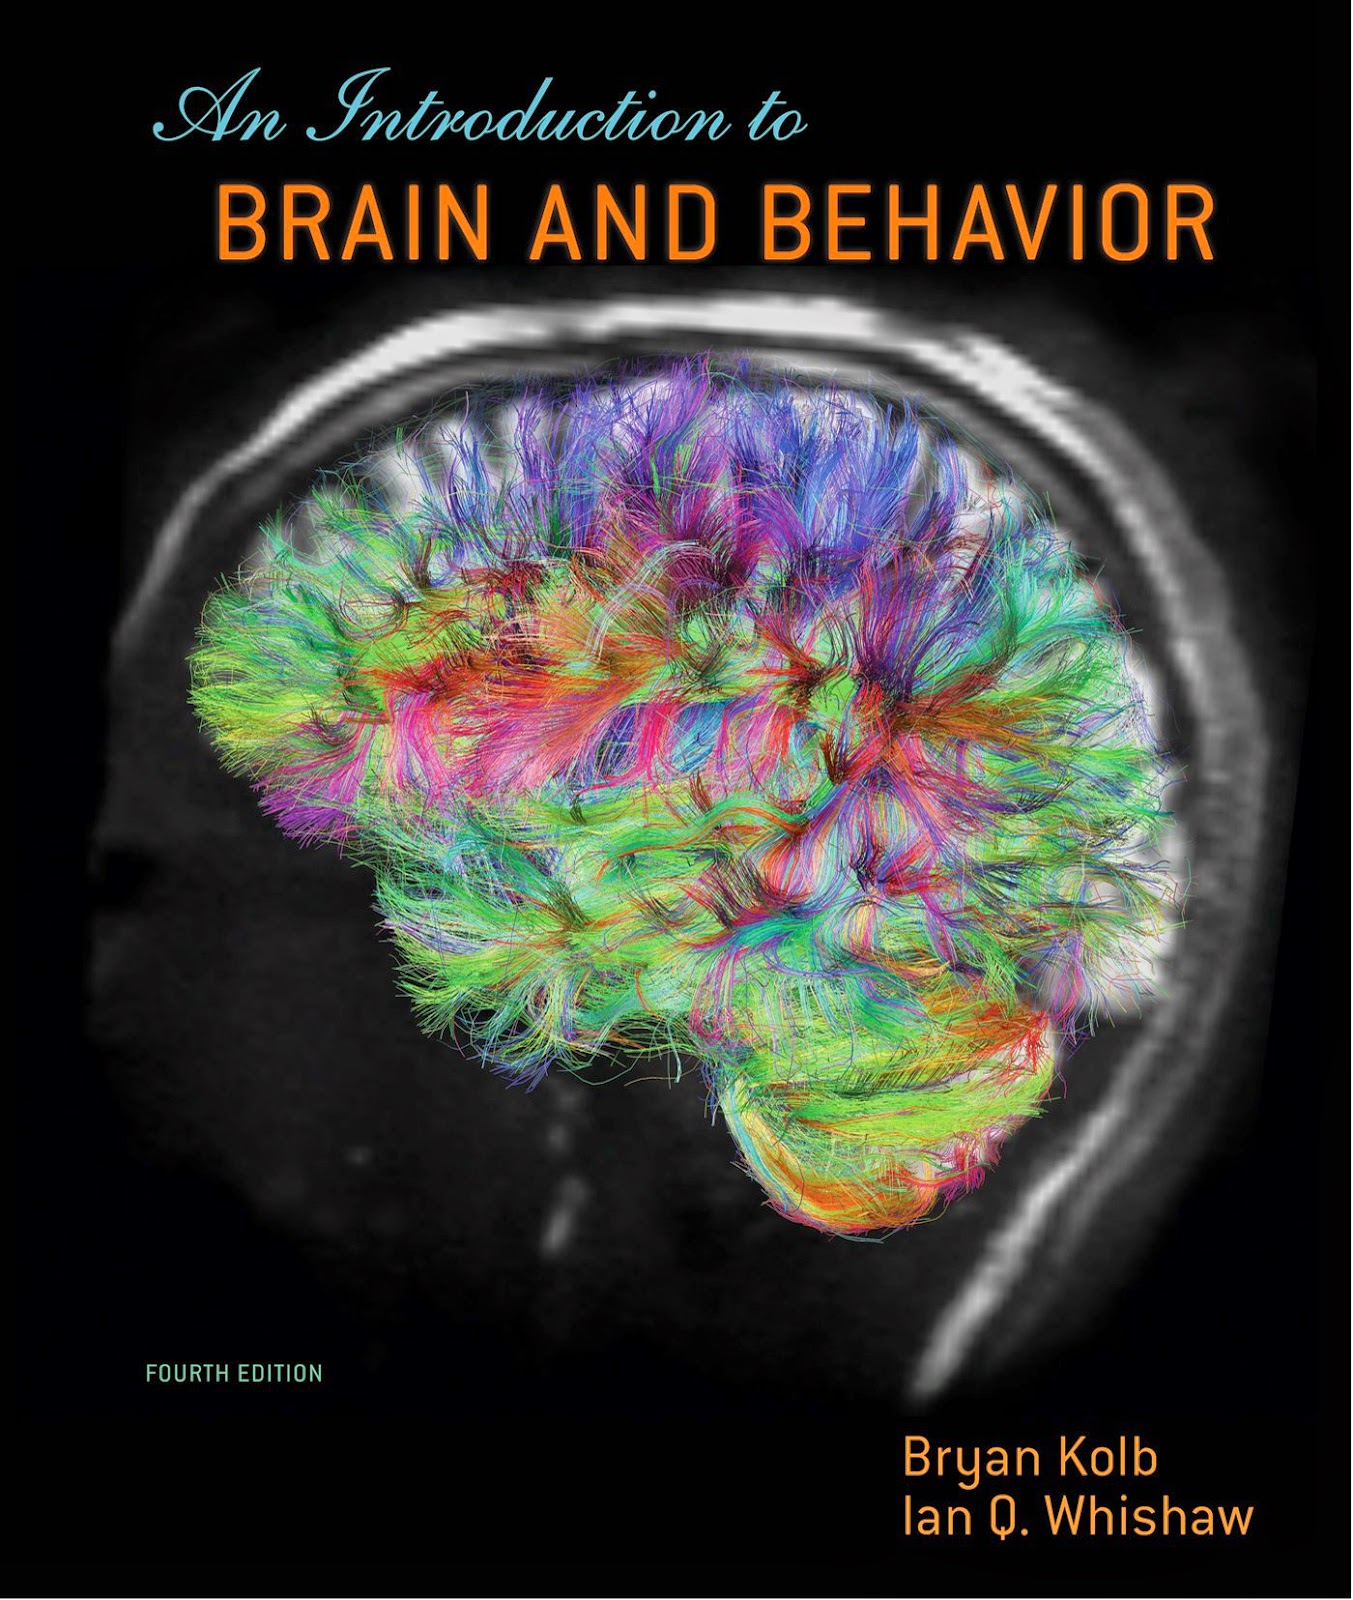 http://www.kingcheapebooks.com/2014/10/an-introduction-to-brain-and-behavior.html